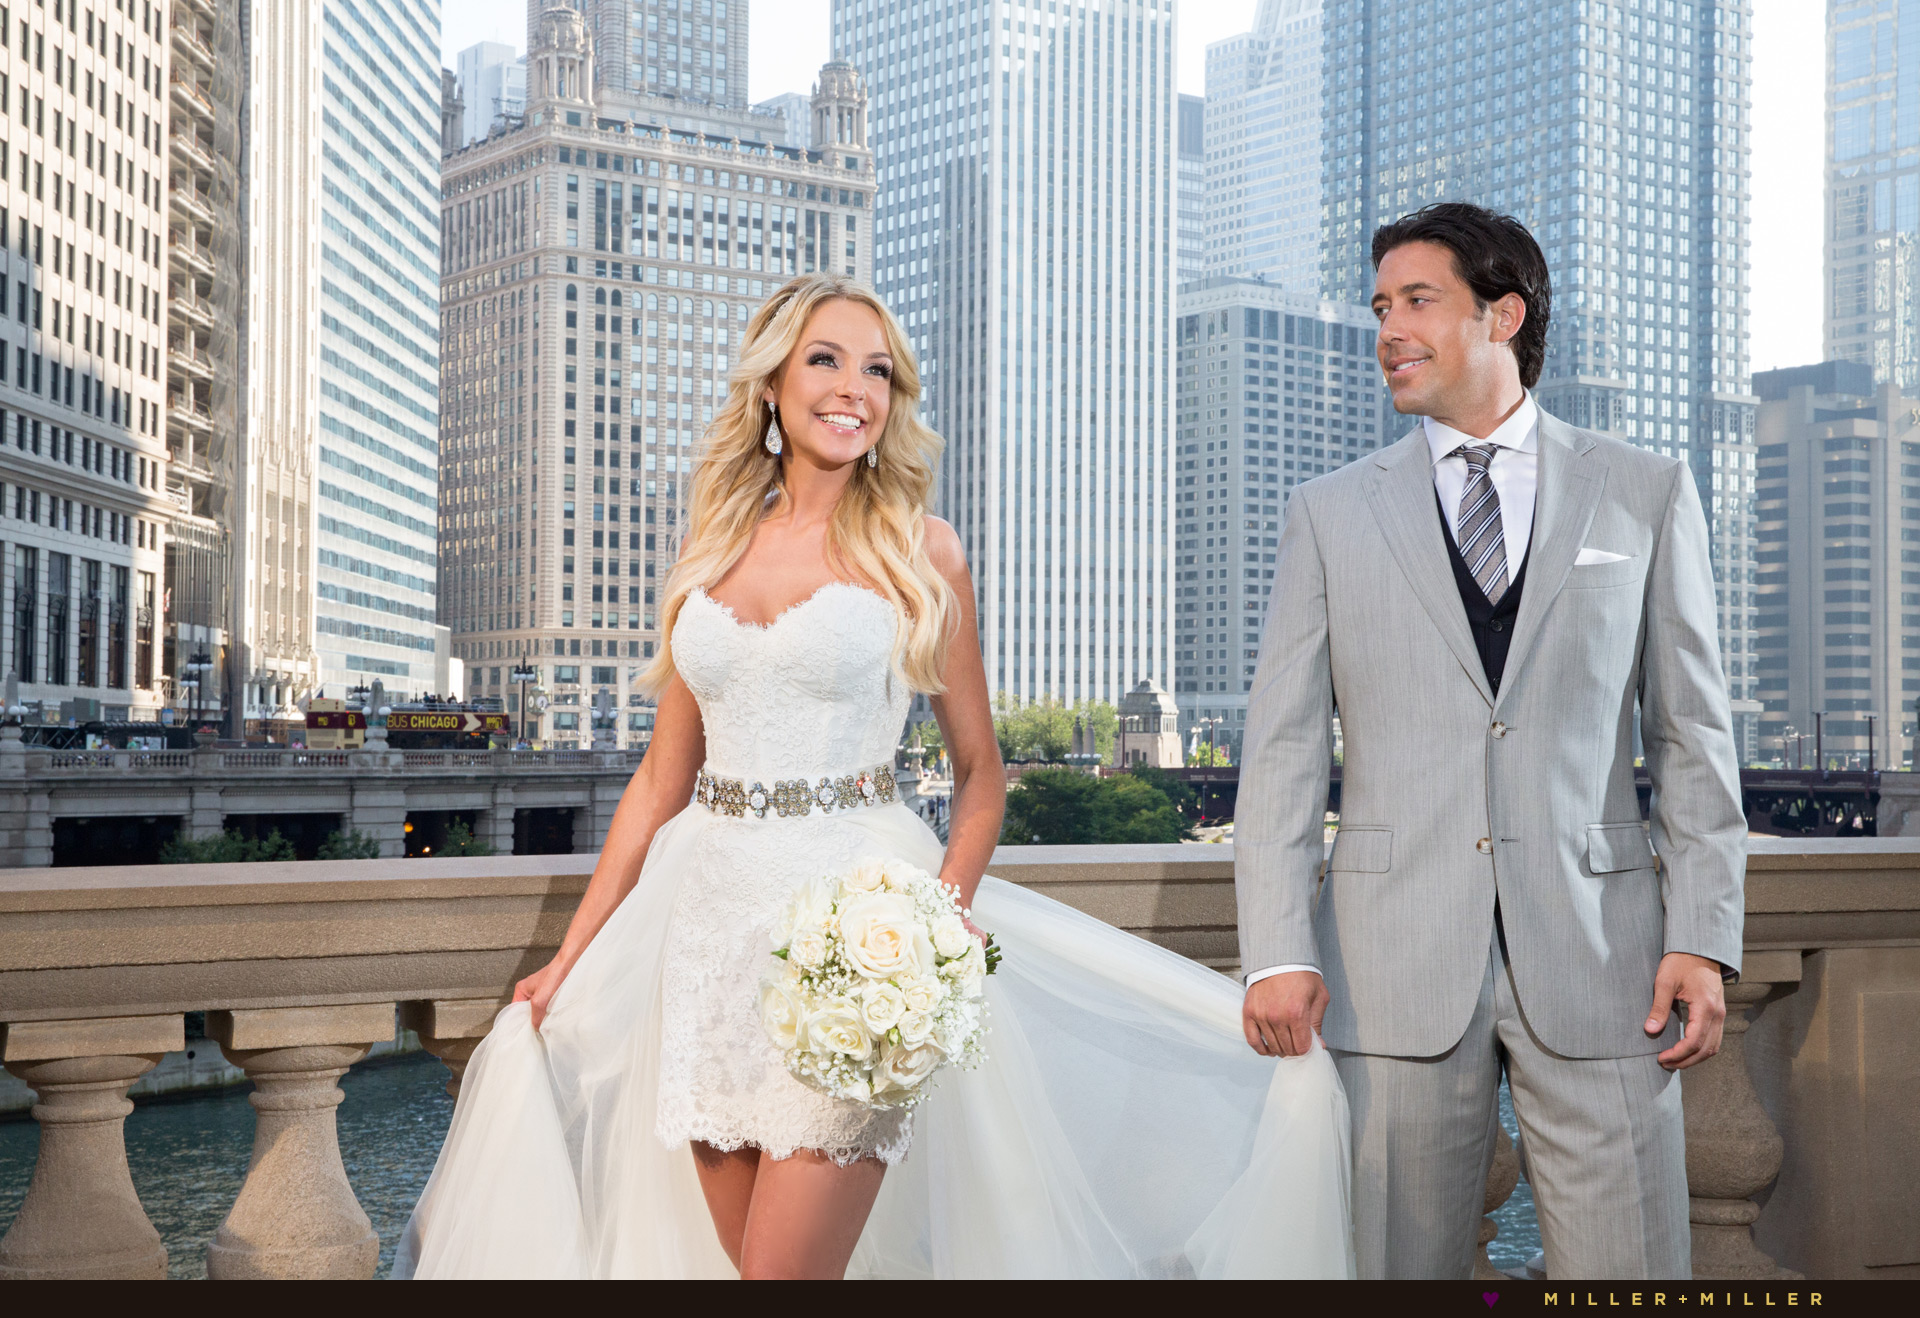 Natalie Ed Swiderski married wedding photographs